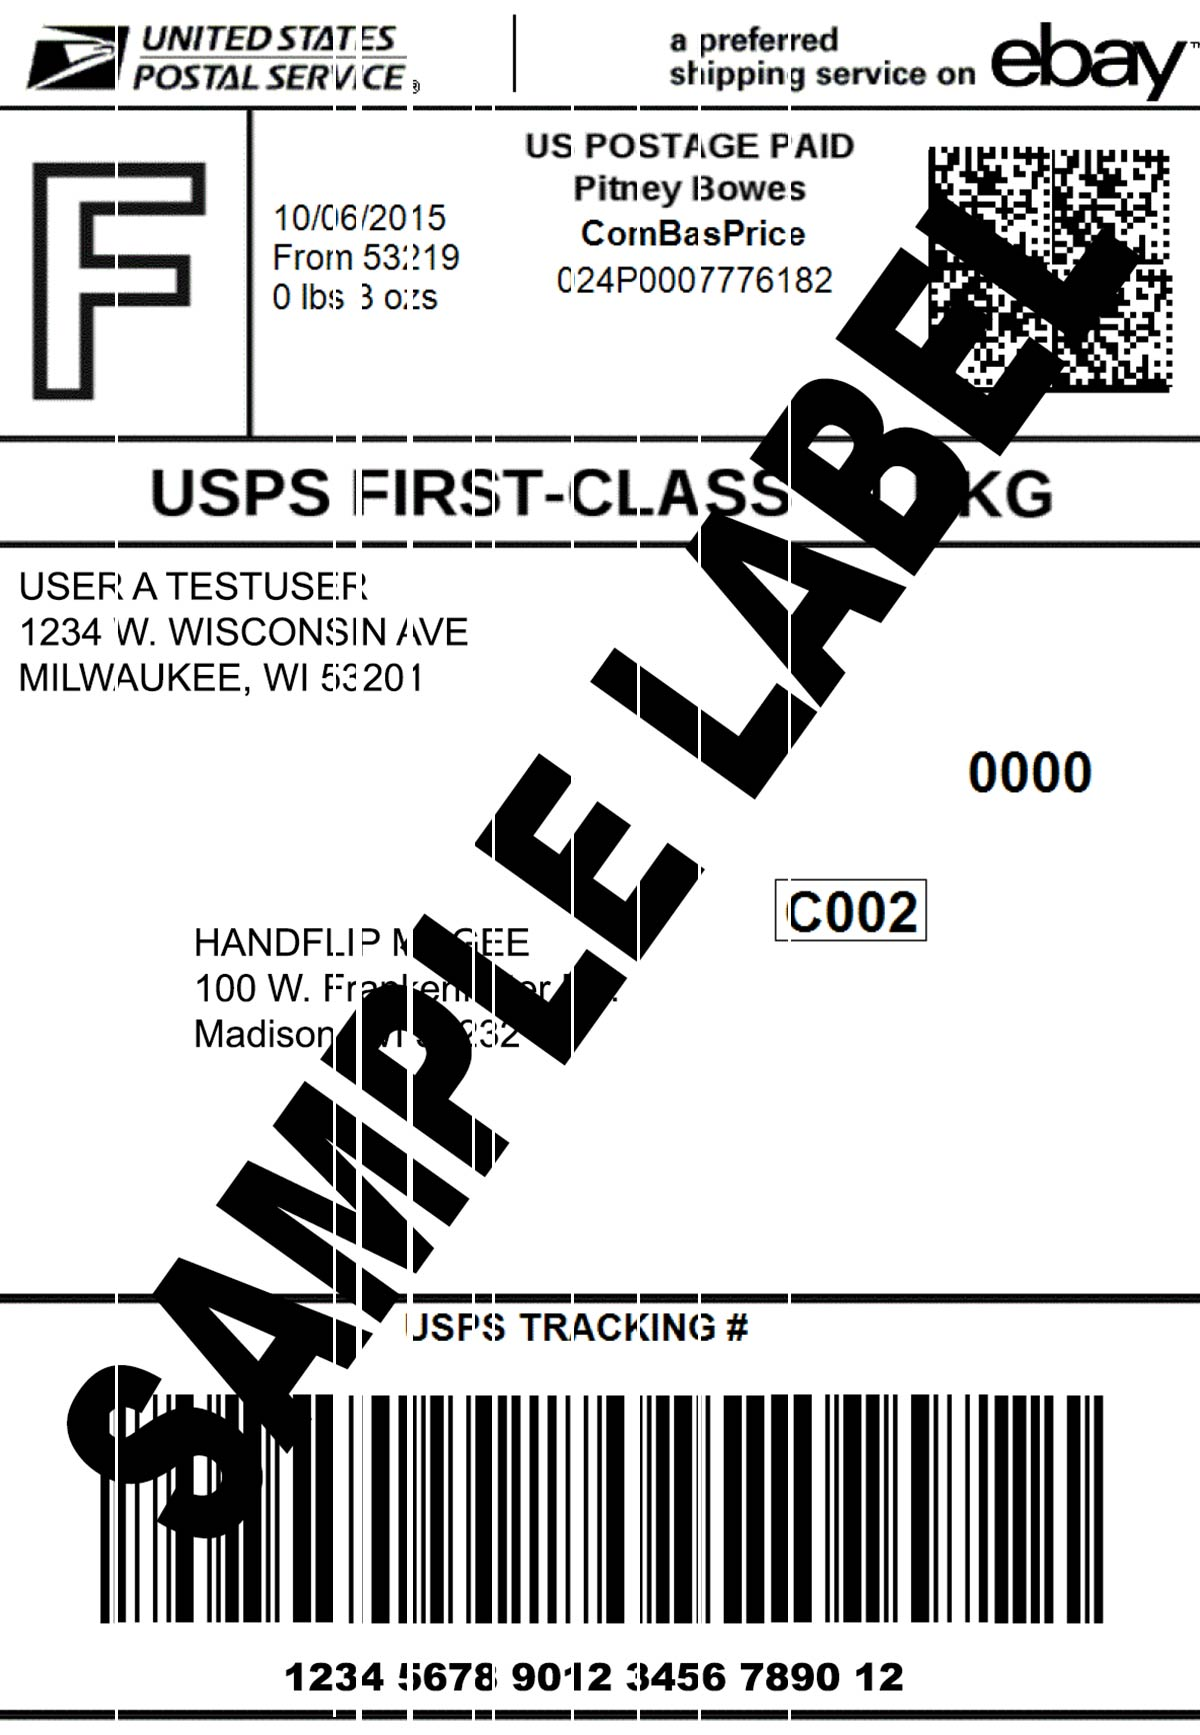 Thermal Printer Test - Shipping Label - Small Vertical Lines.